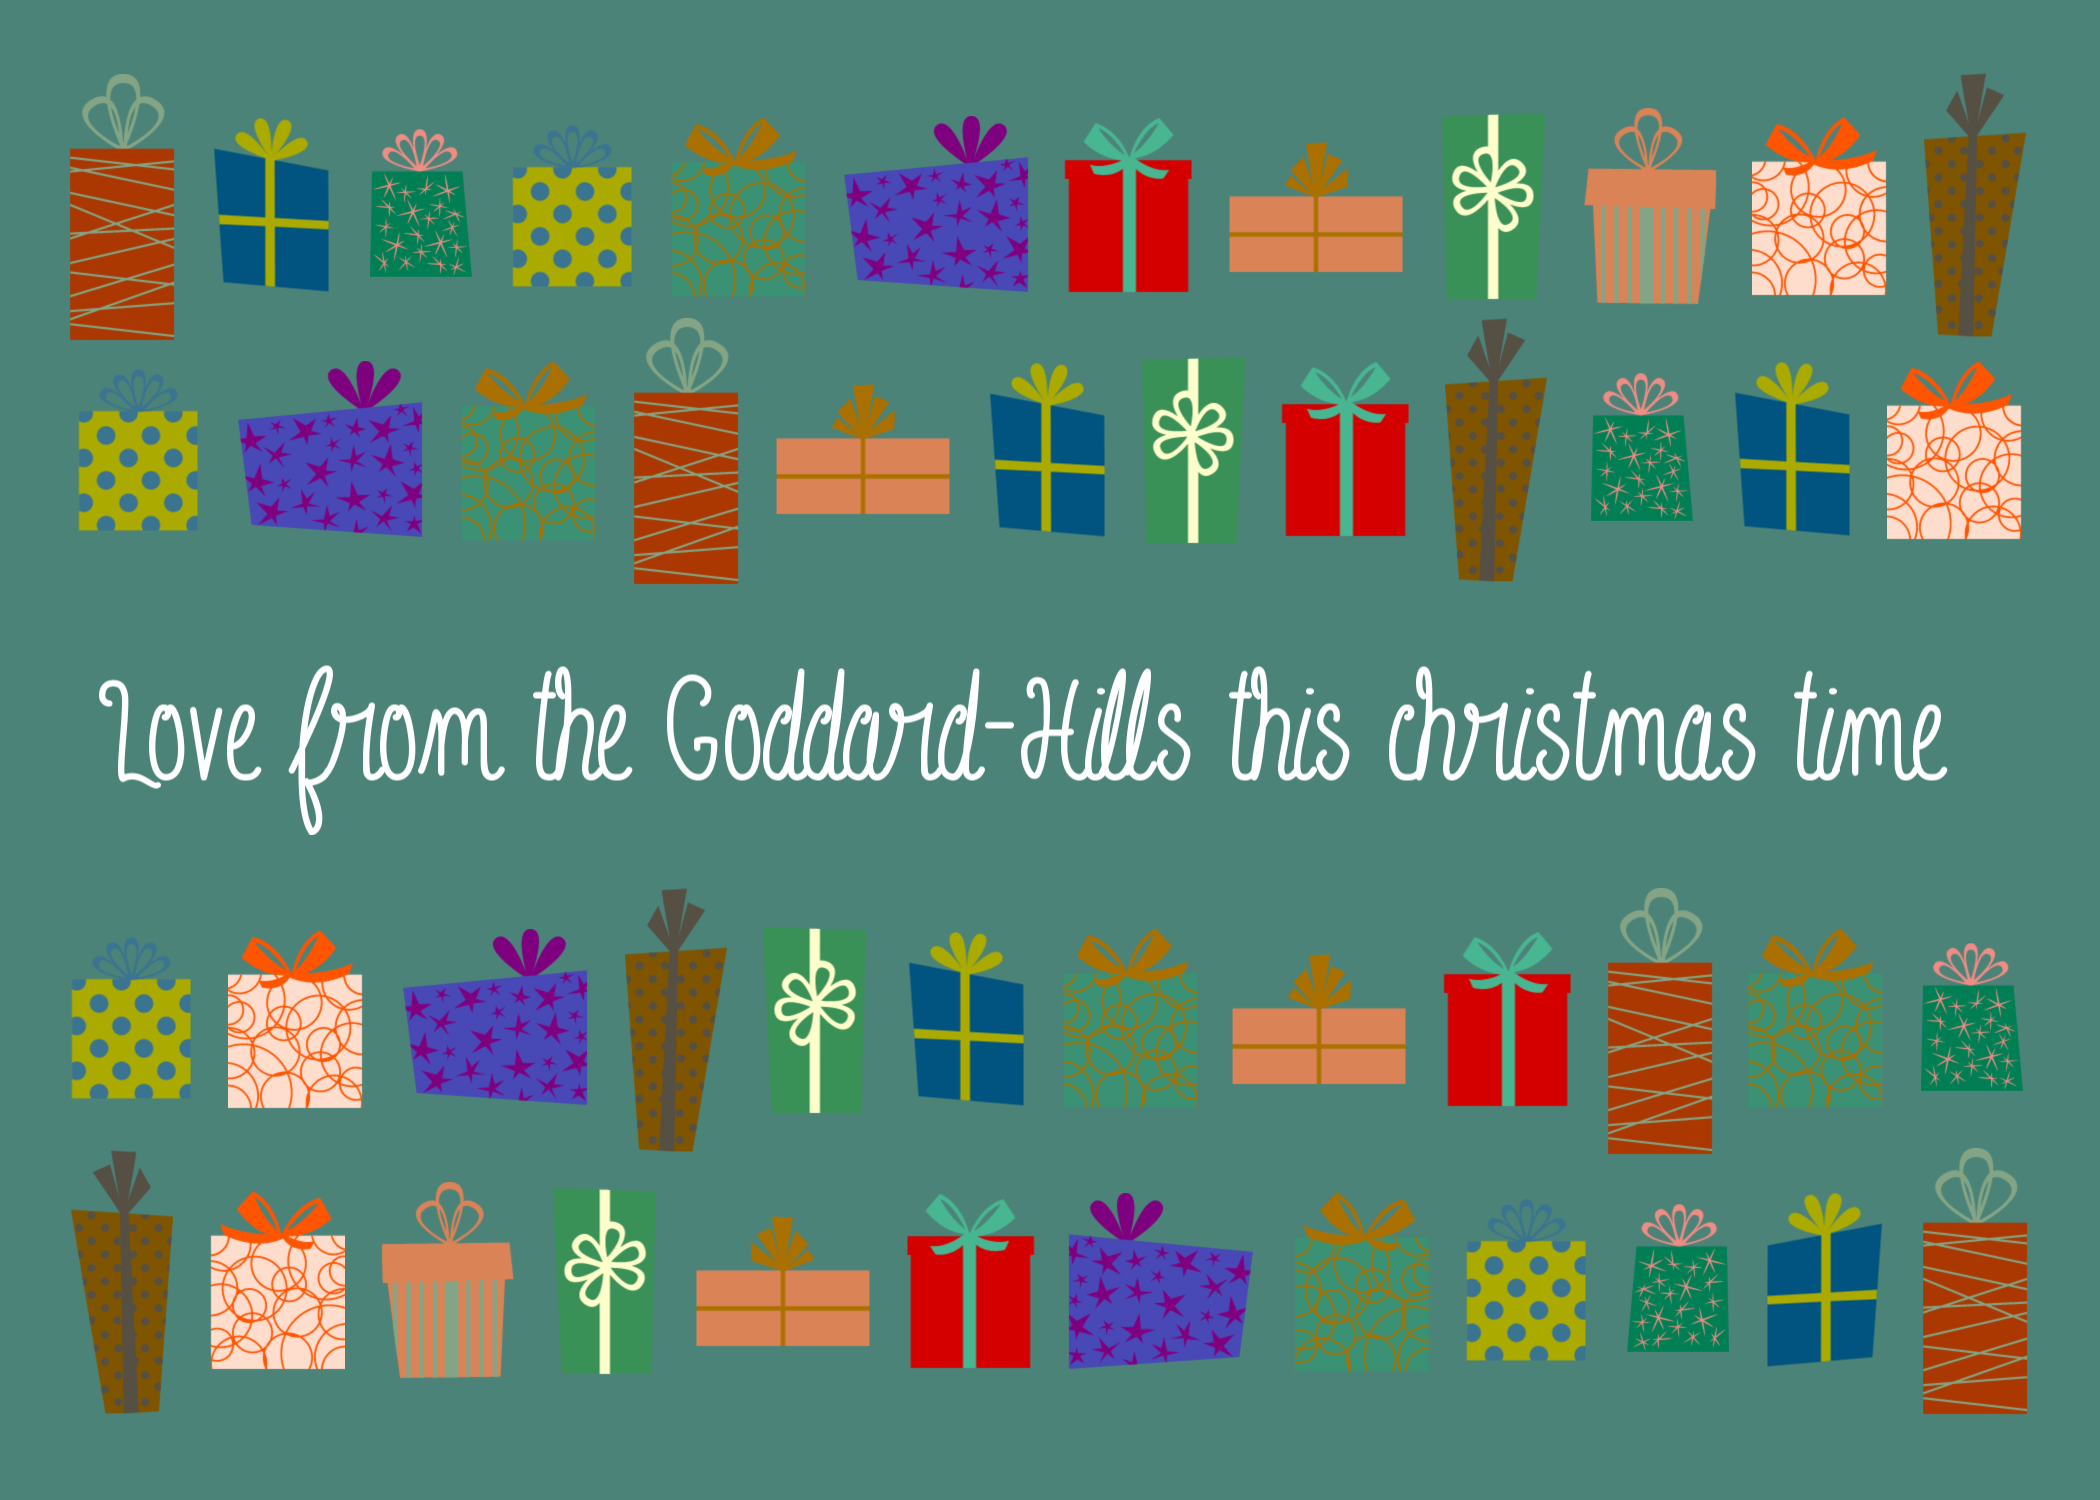 Free fonts for your Christmas Cards